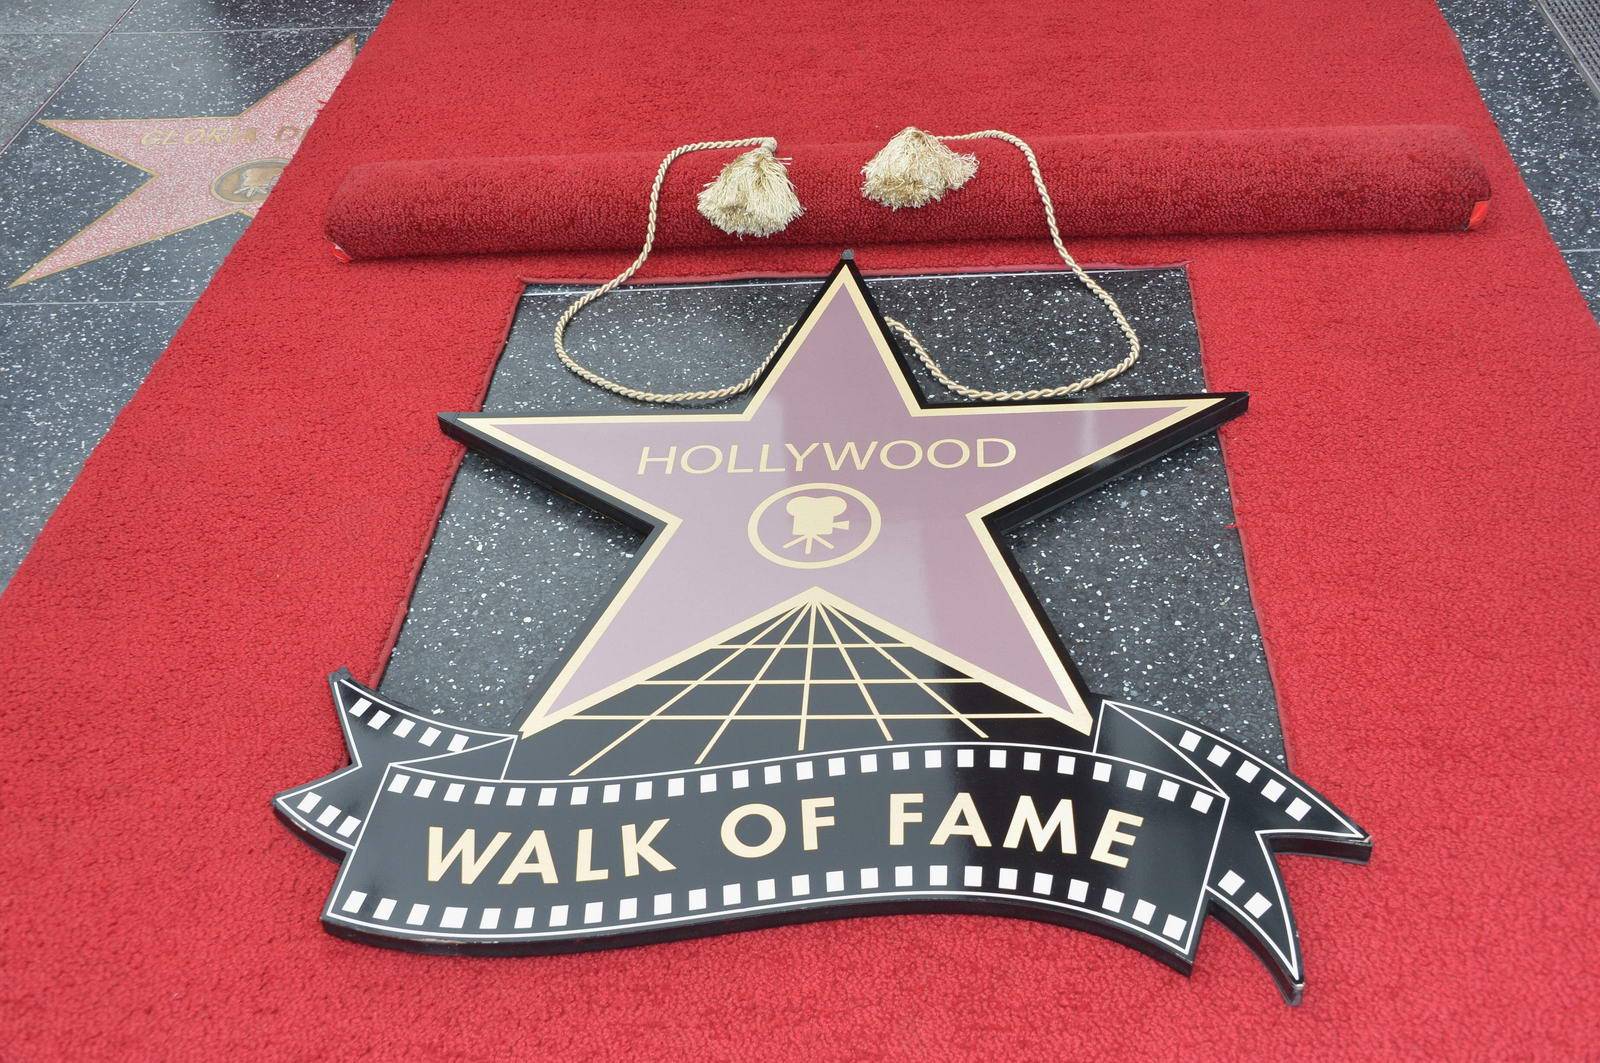 Le Hollywood Walk of Fame à Los Angeles